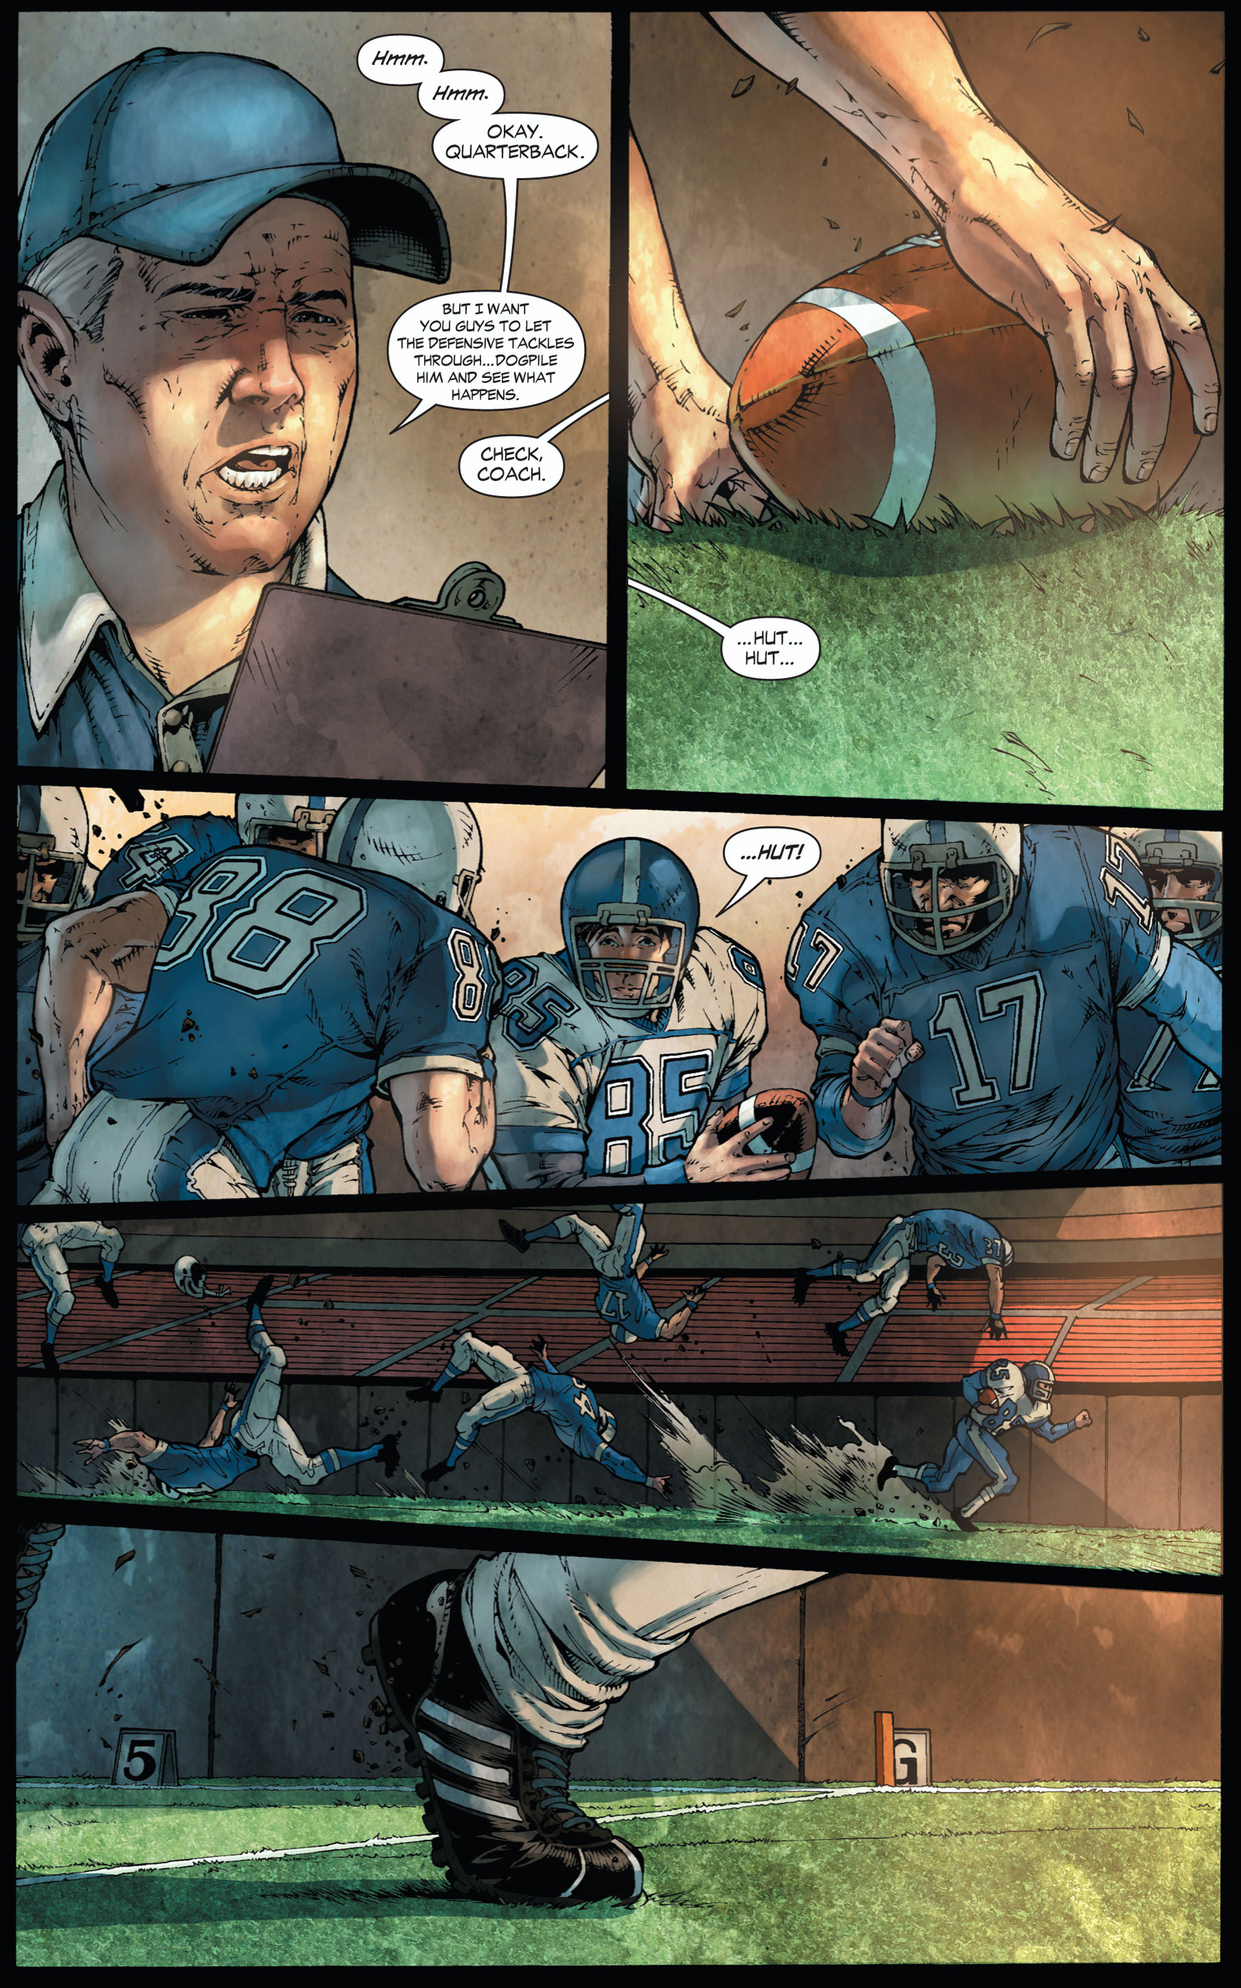 clark kent tries out for a football team